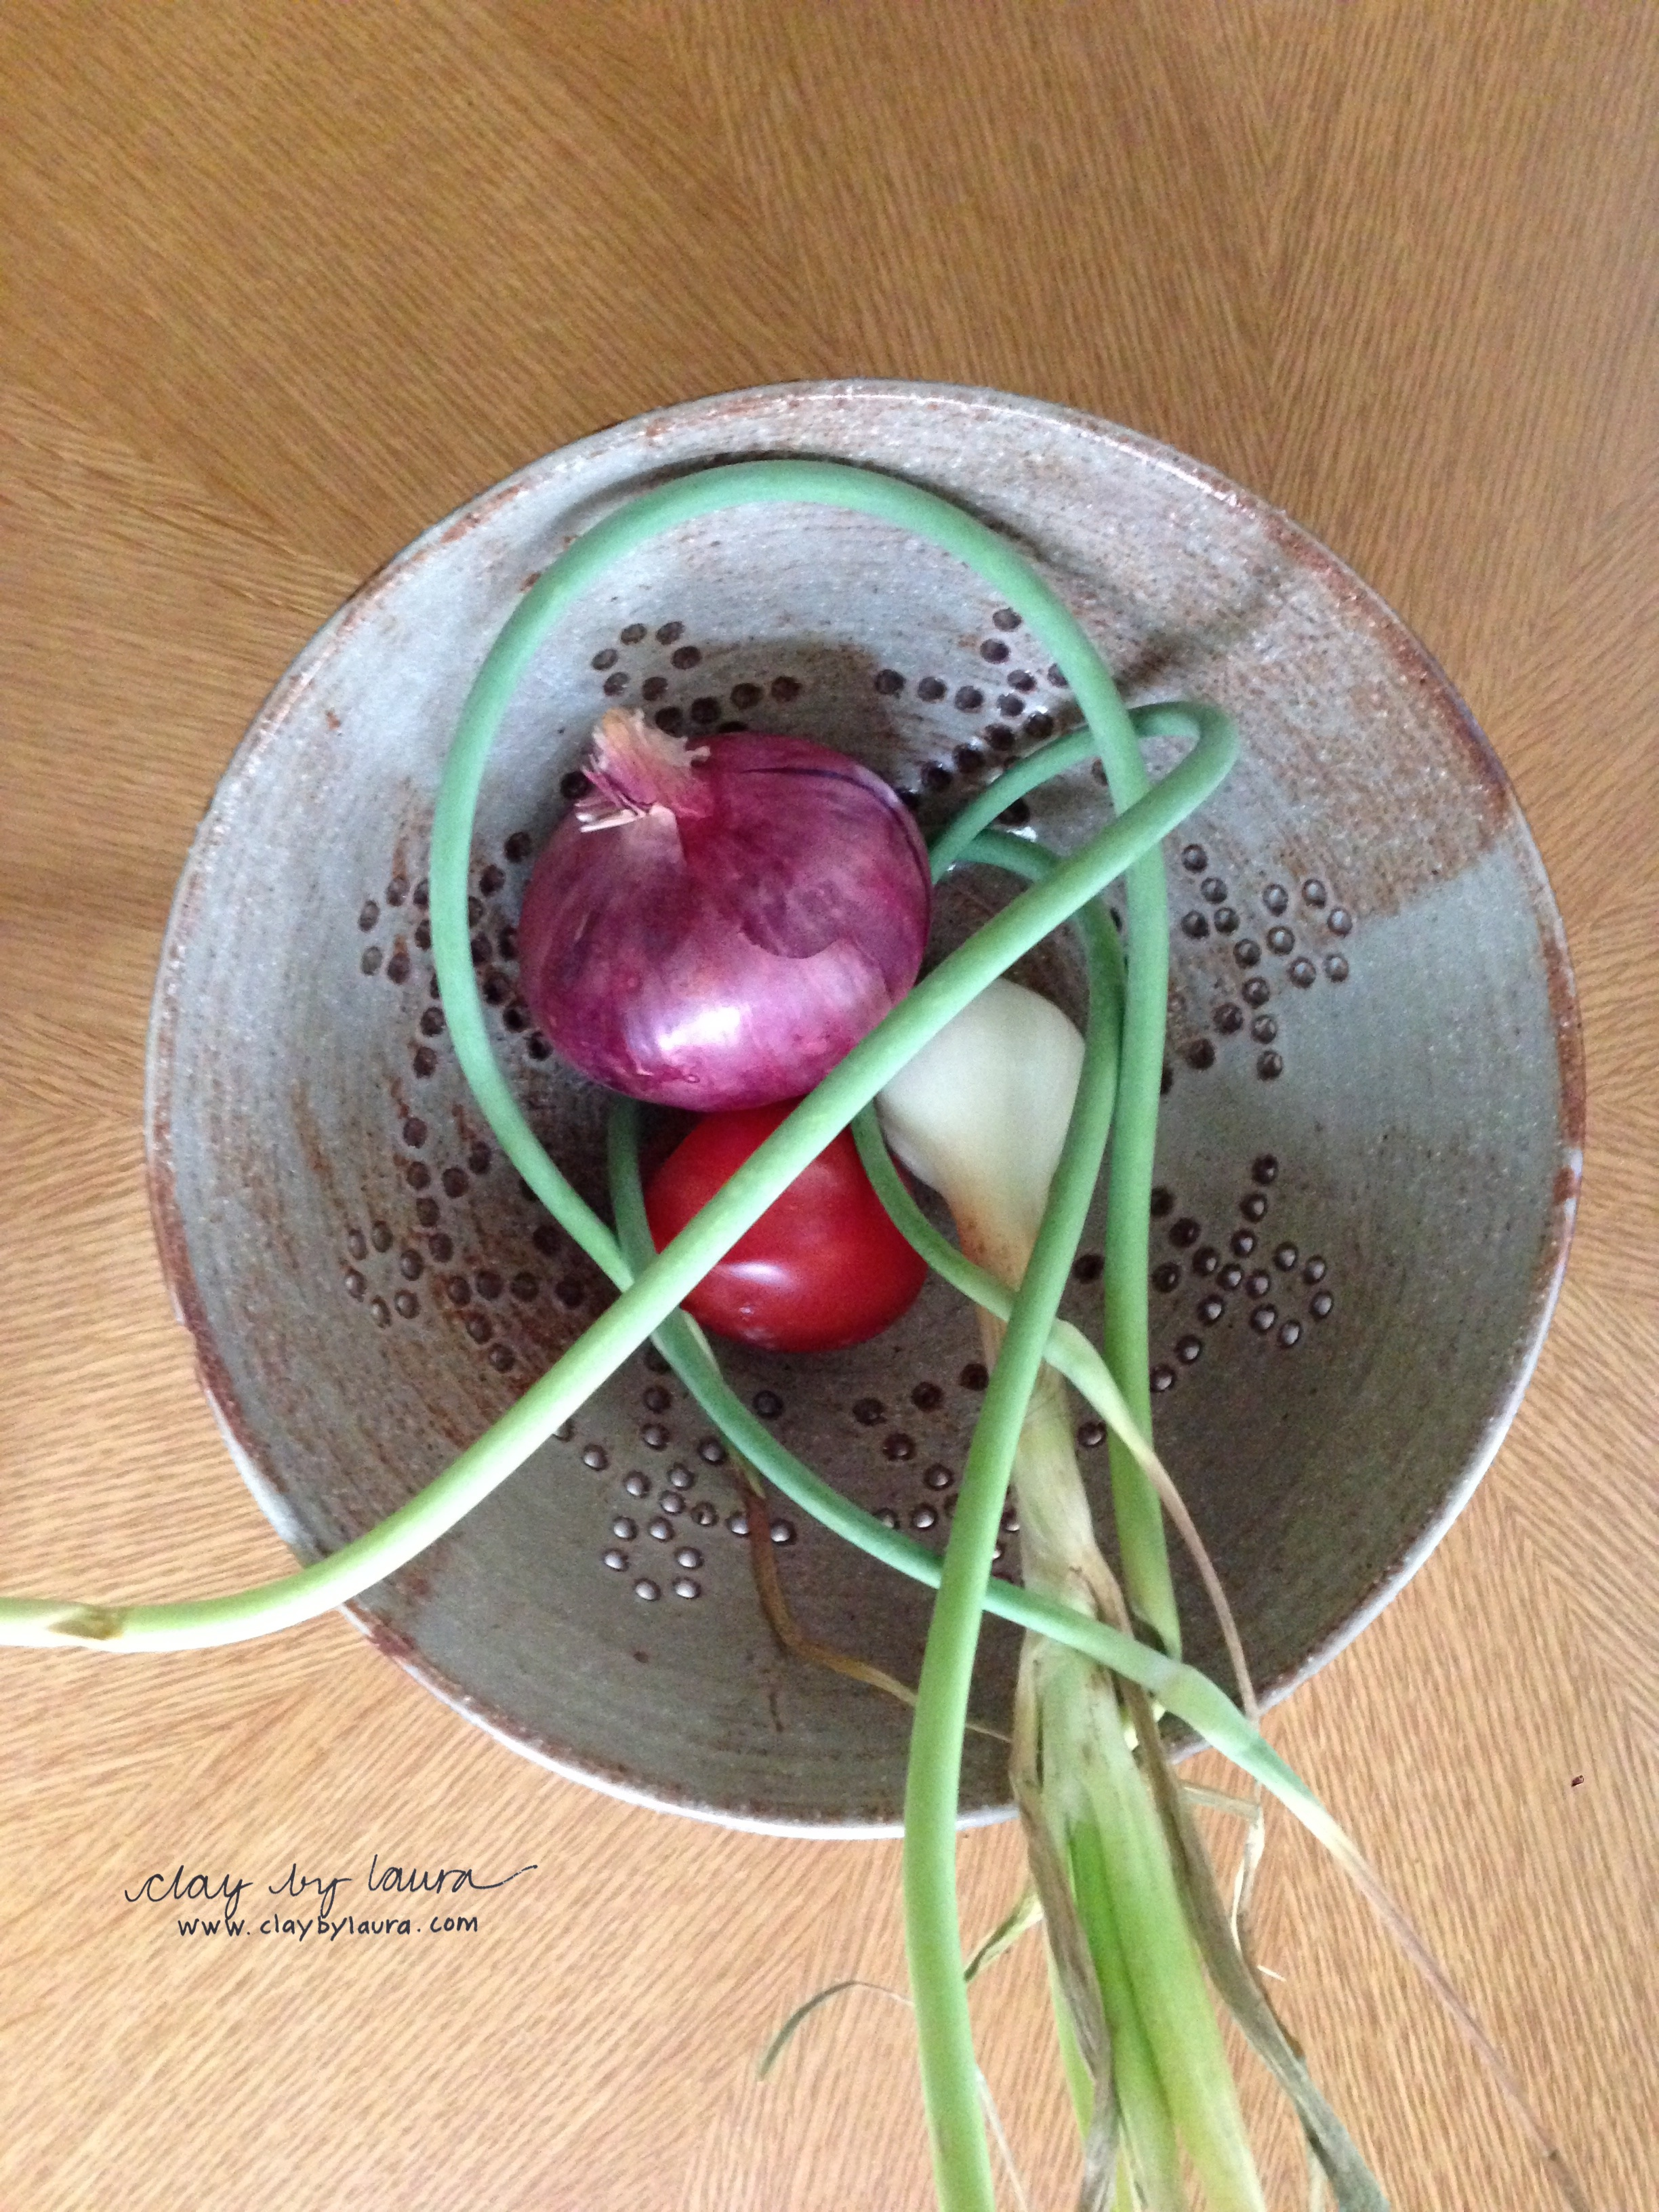 Bowls with holes can be used to wash and store vegetables or fruit.